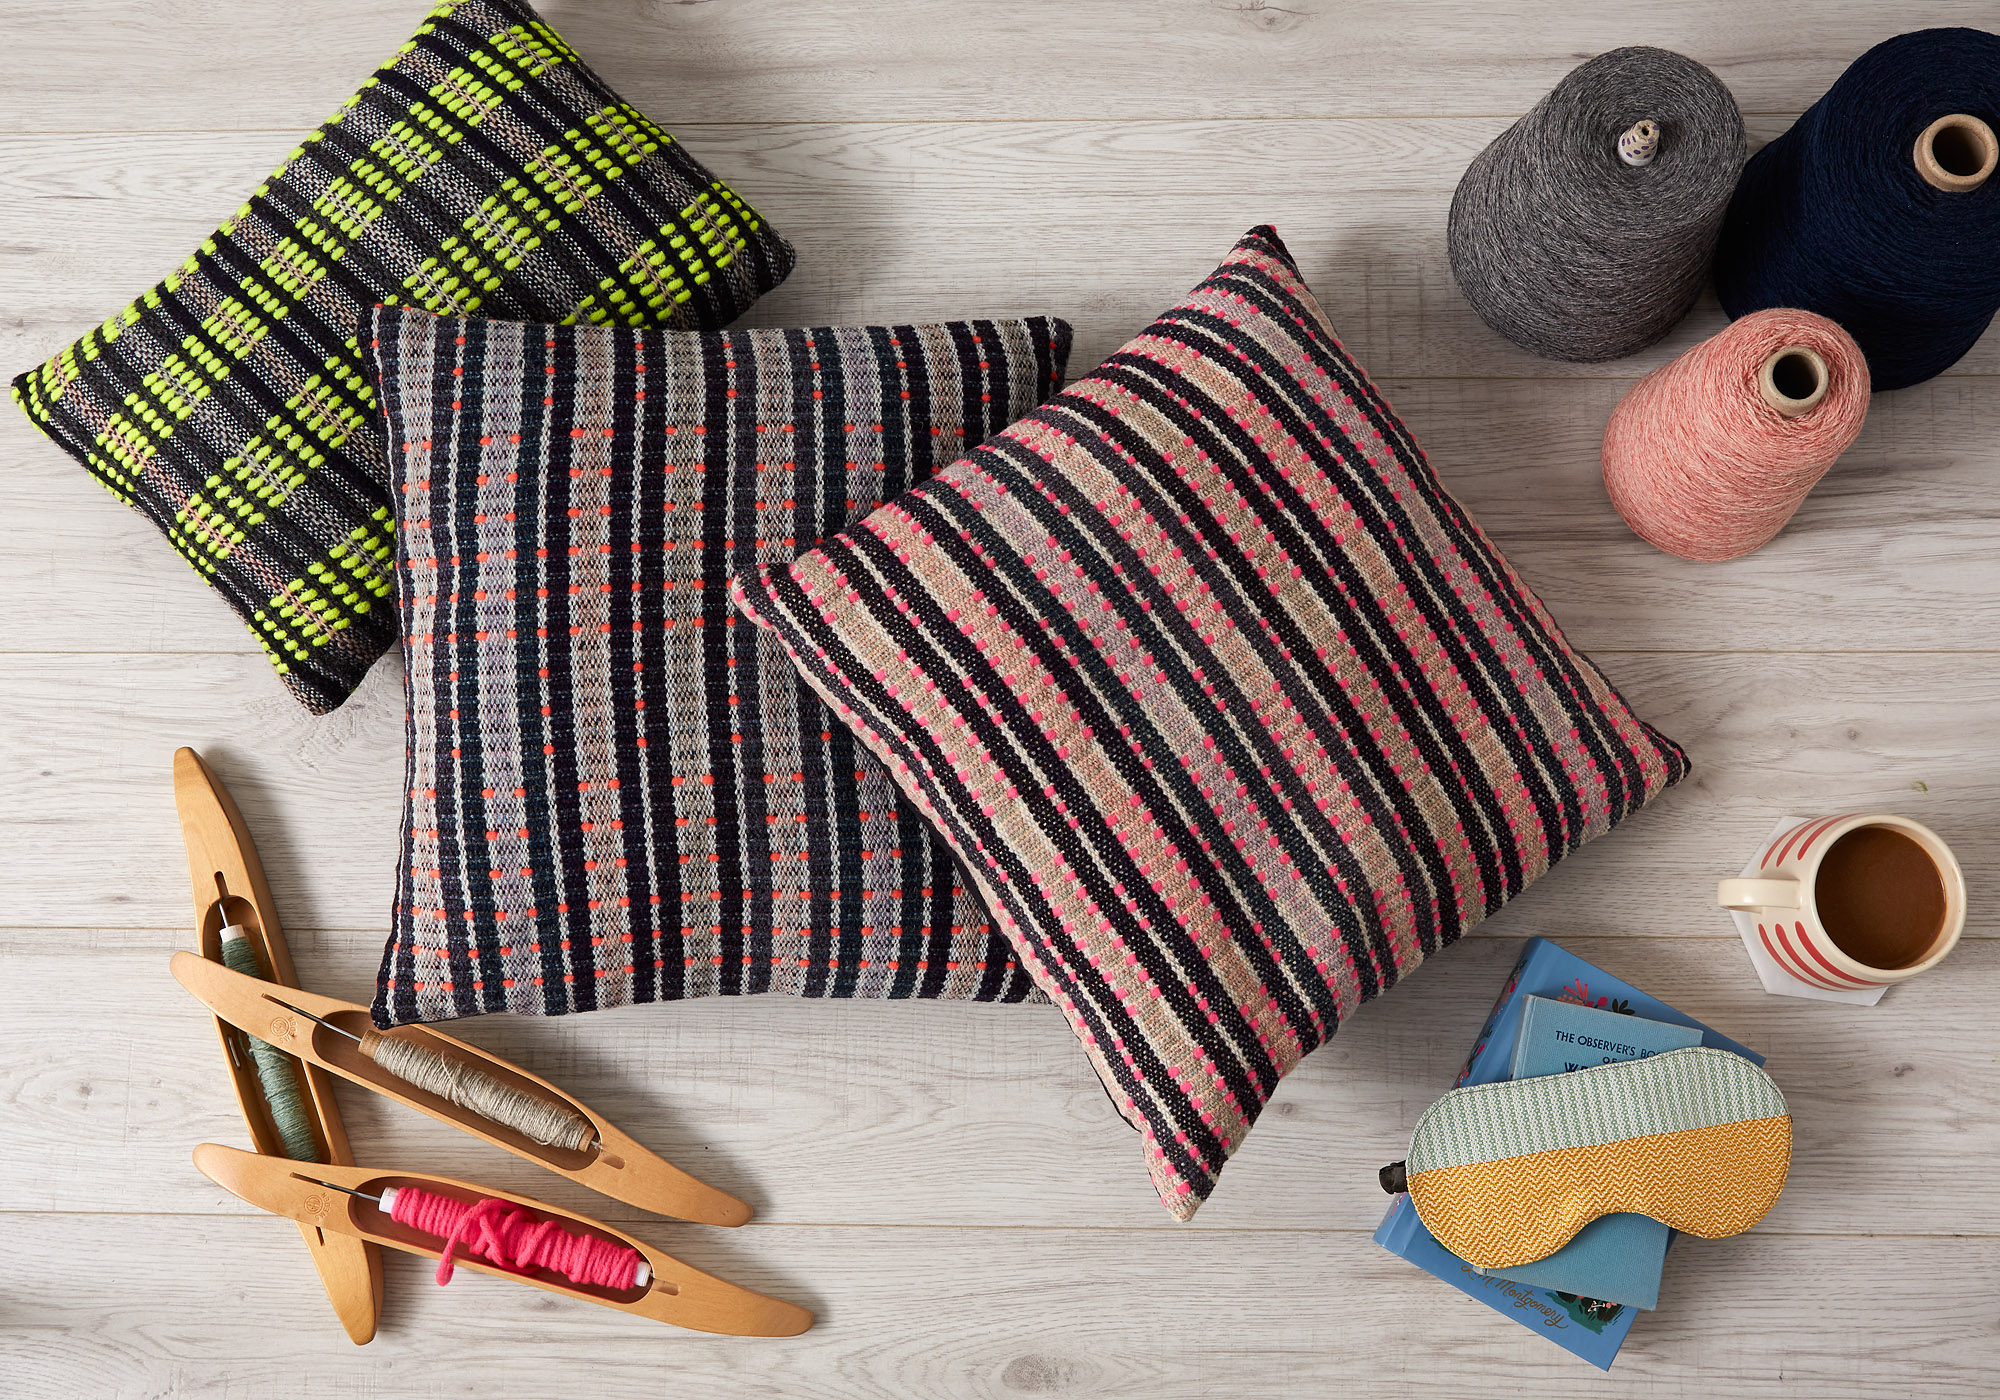 Hand woven festival inspired cushions to brighten up the Winter days.